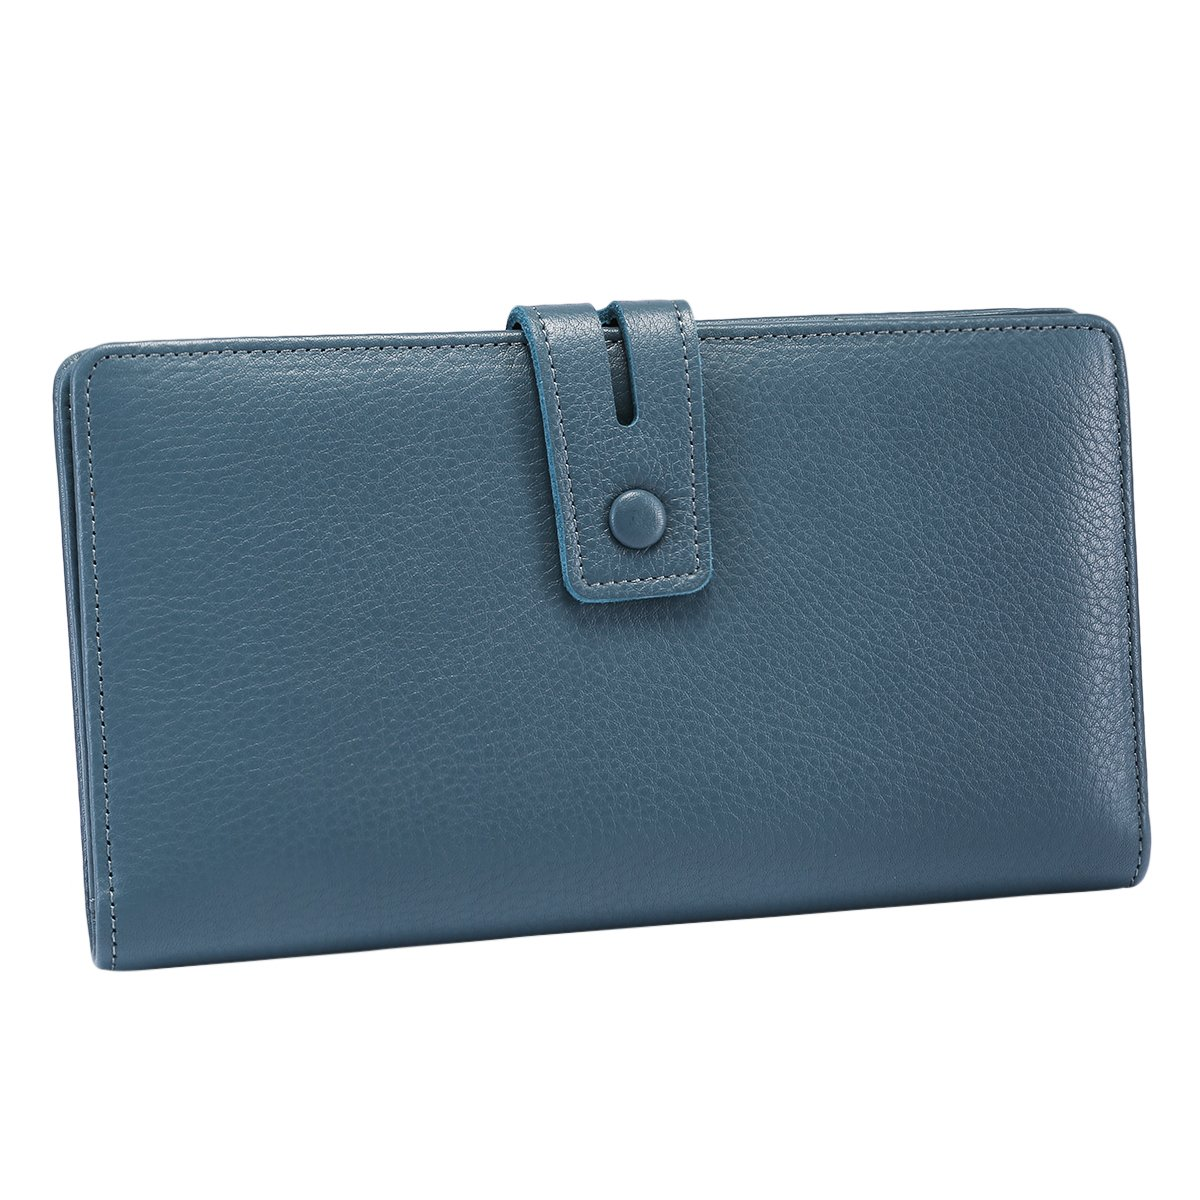 ITSLIFE Women's Big Fat RFID Blocking Leather Wallet Clutch Organizer with Checkbook Holder(Blue) by ITSLIFE (Image #2)